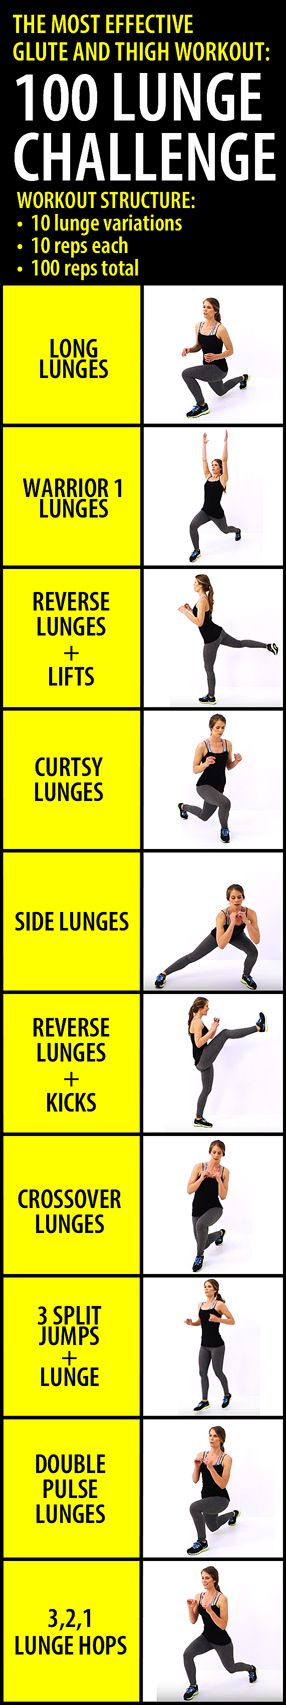 The lunge variations in this lower body workout are excellent for targeting the glutes and thighs from various angles, which makes it VERY effective for toning and shaping those muscles. For the best results do this workout 3-4 times a week.